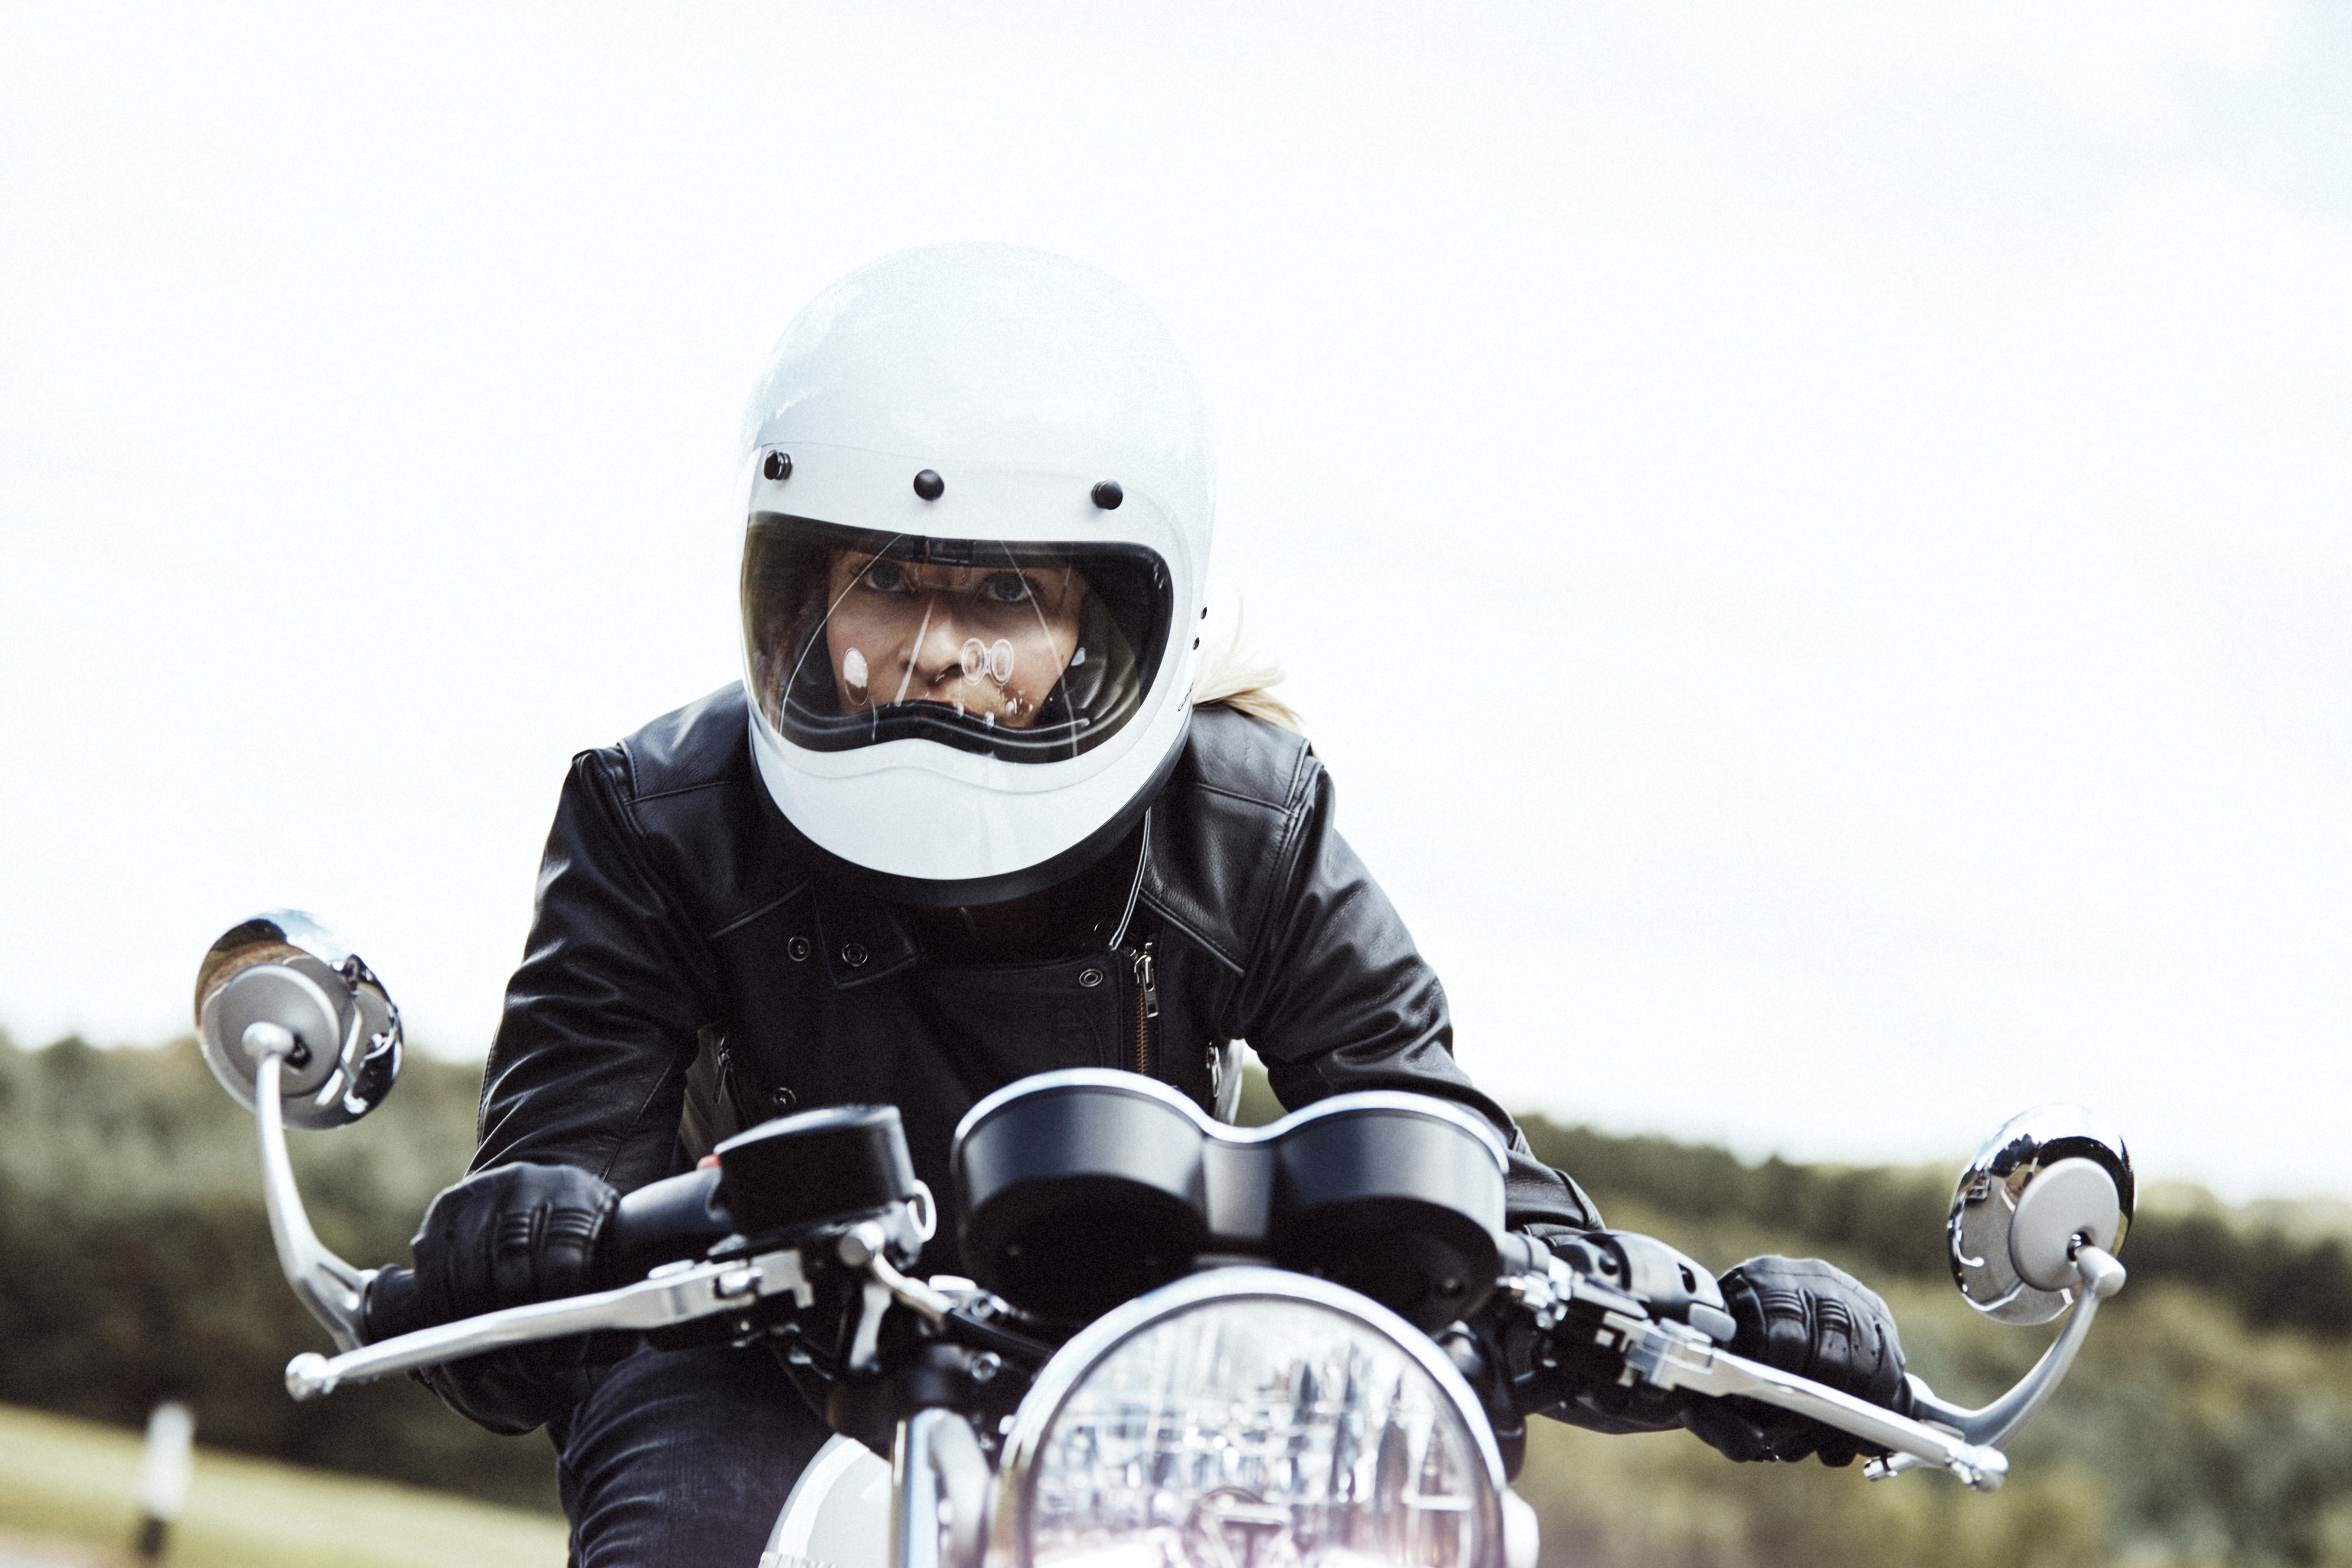 Andreas Kleiberg – Triumph Motorcycles